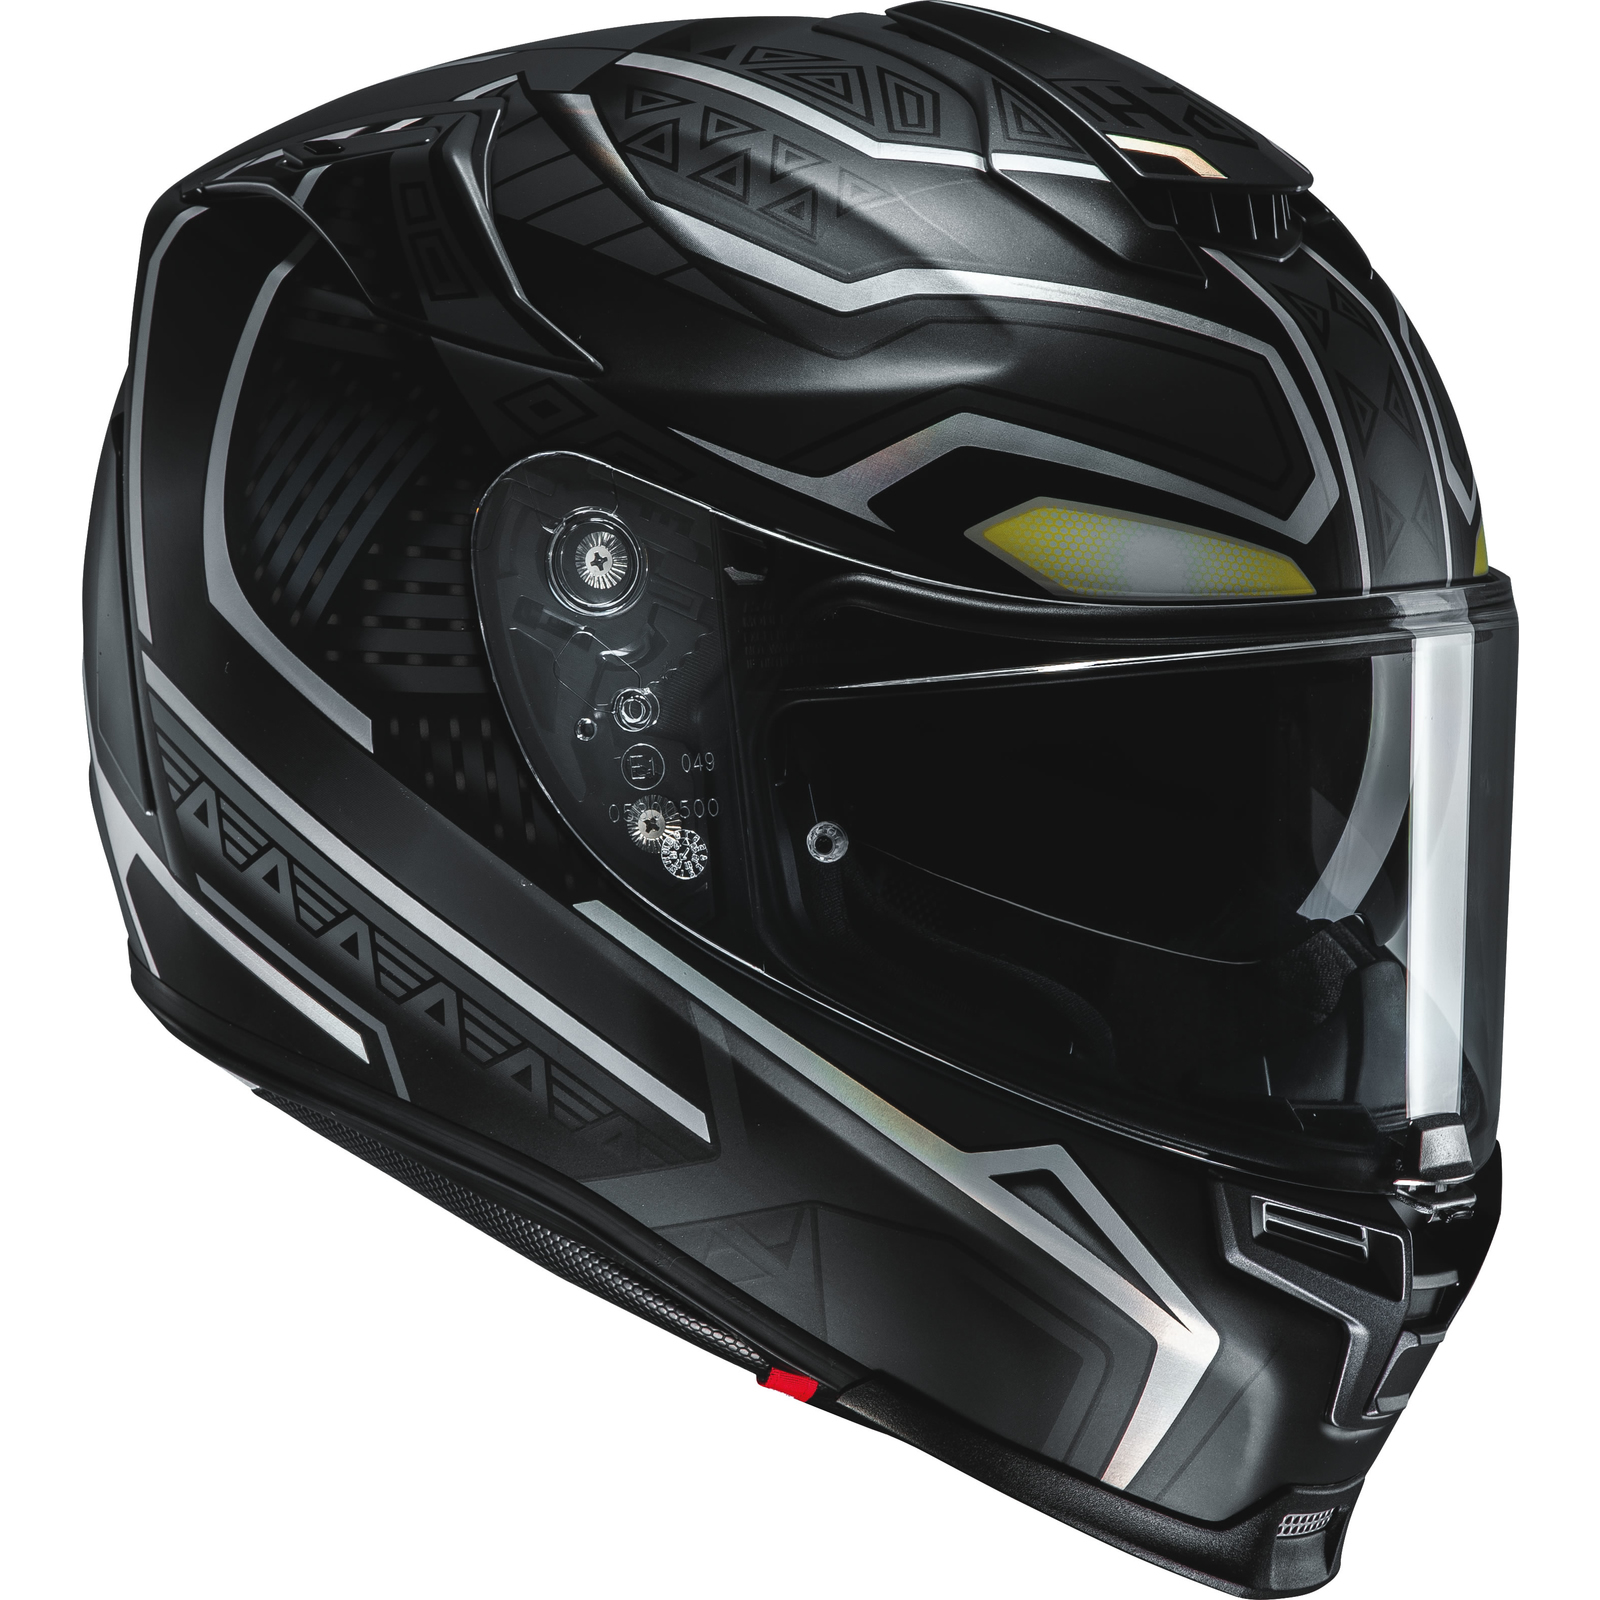 HJC RPHA 70 Black Panther Motorcycle Helmet New Arrivals